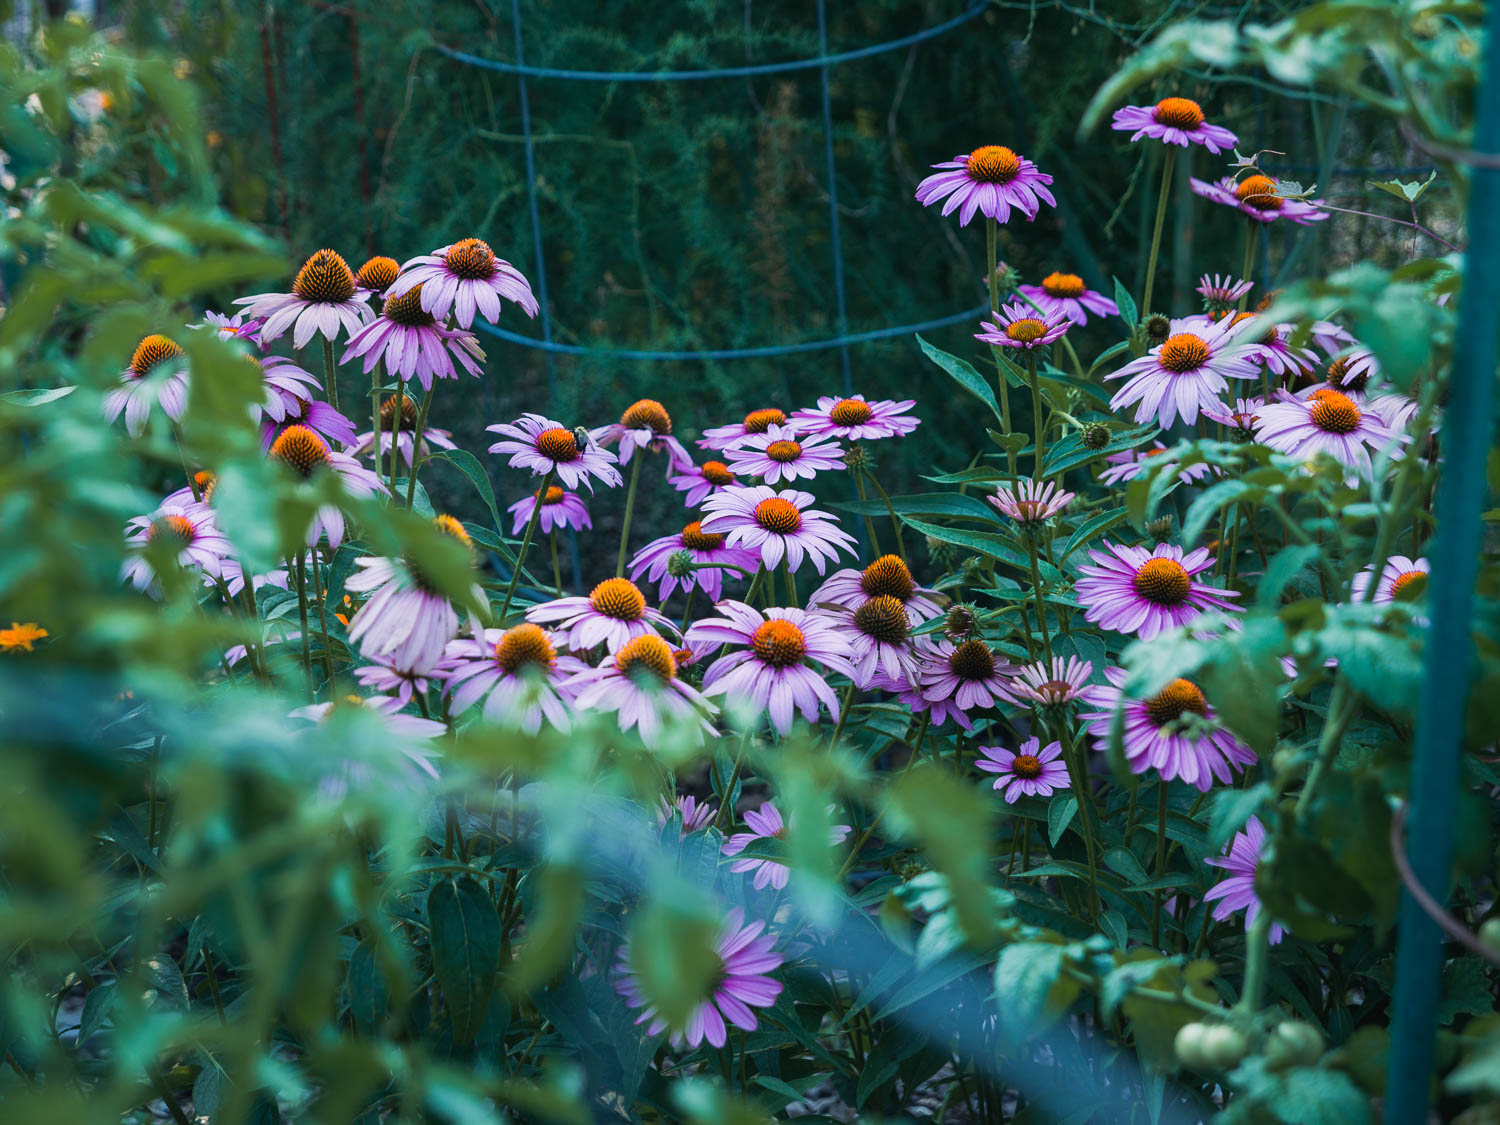 A wider view of the purple coneflowers placed within several tomato plants.